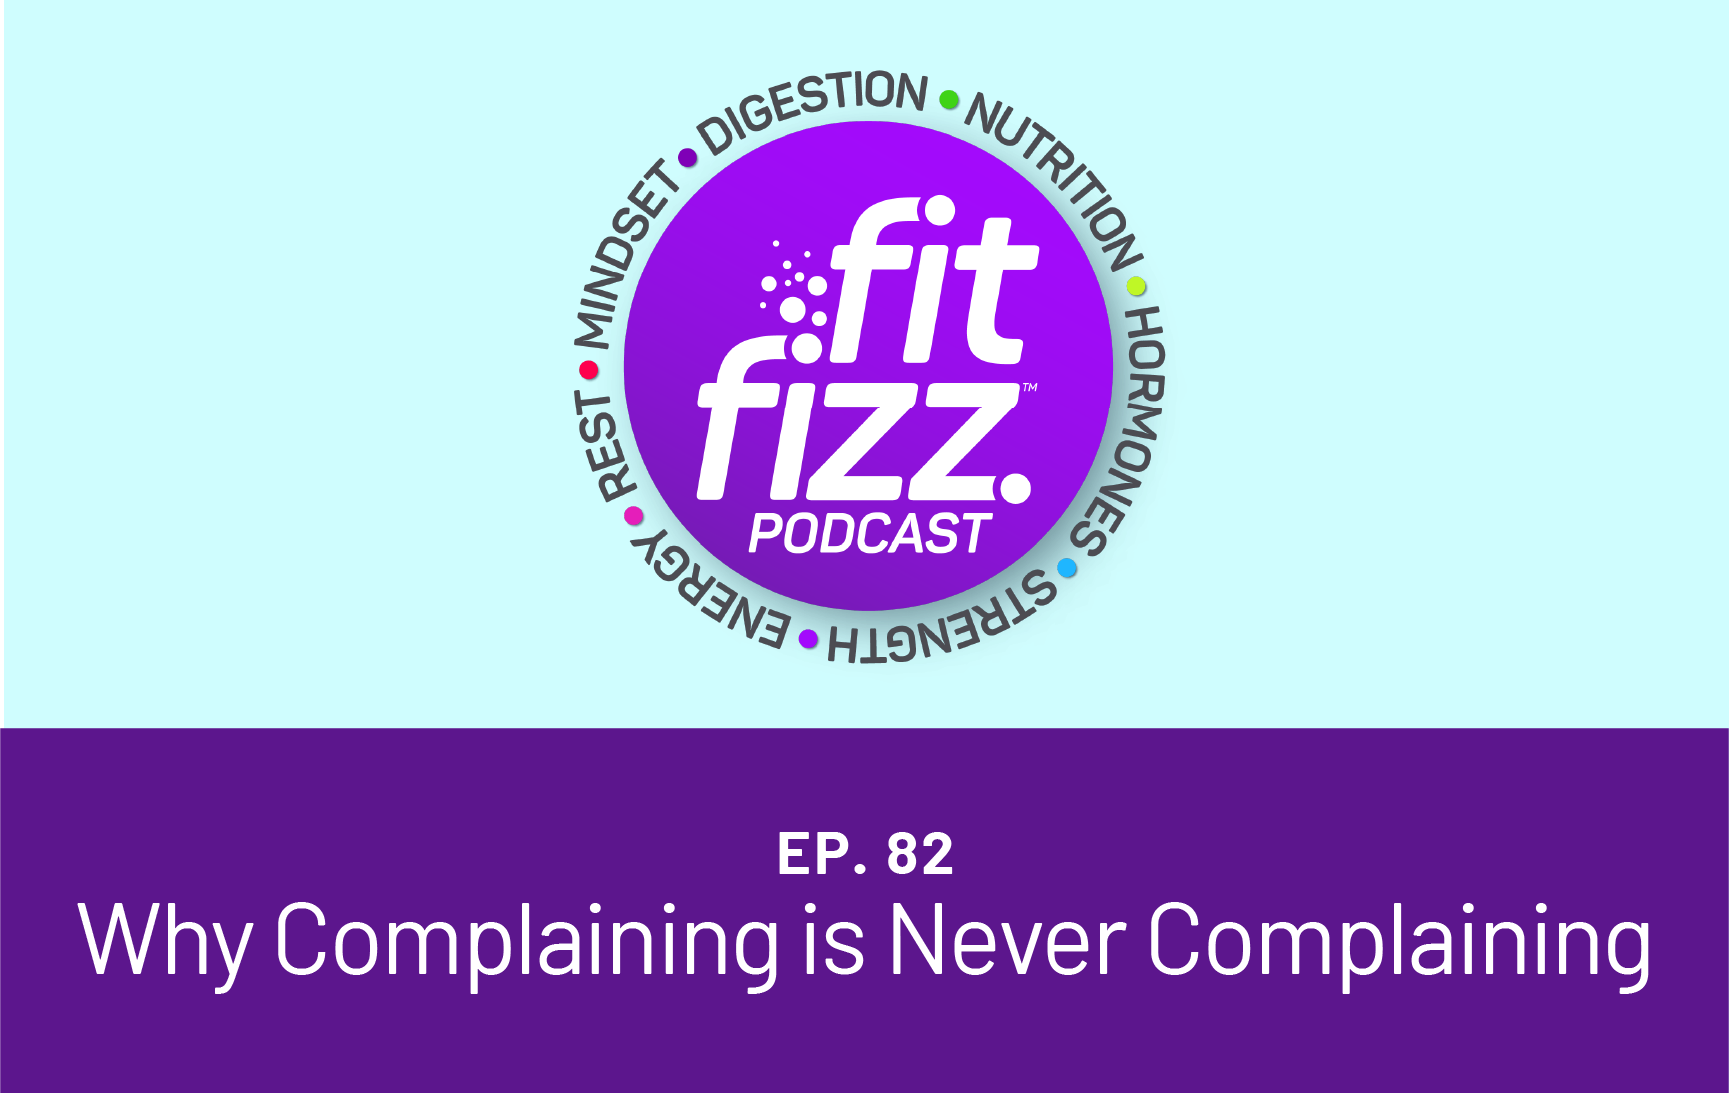 Ep. 82: Why Complaining is Never Complaining